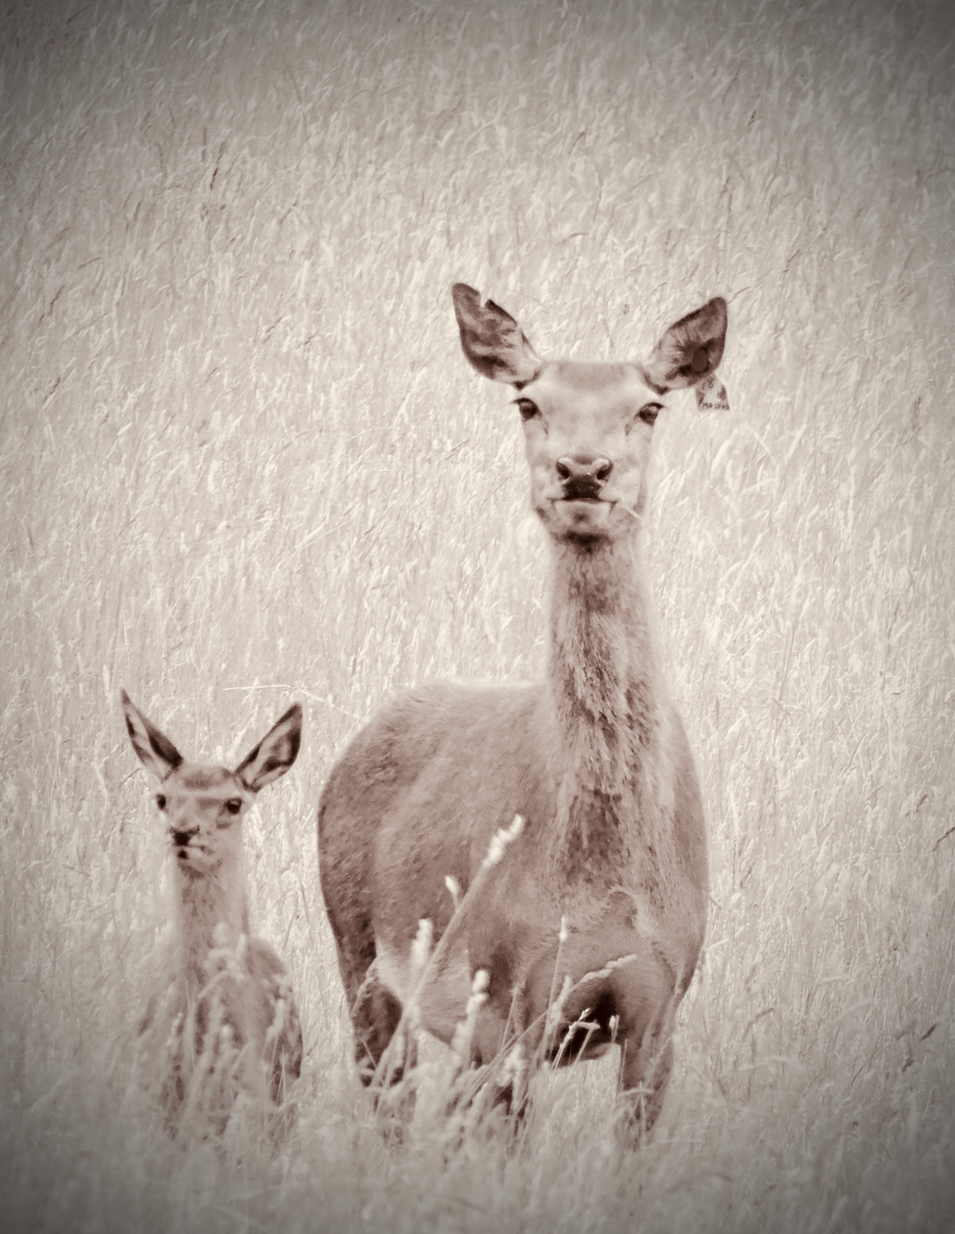 Mother deer and fawn in sepia